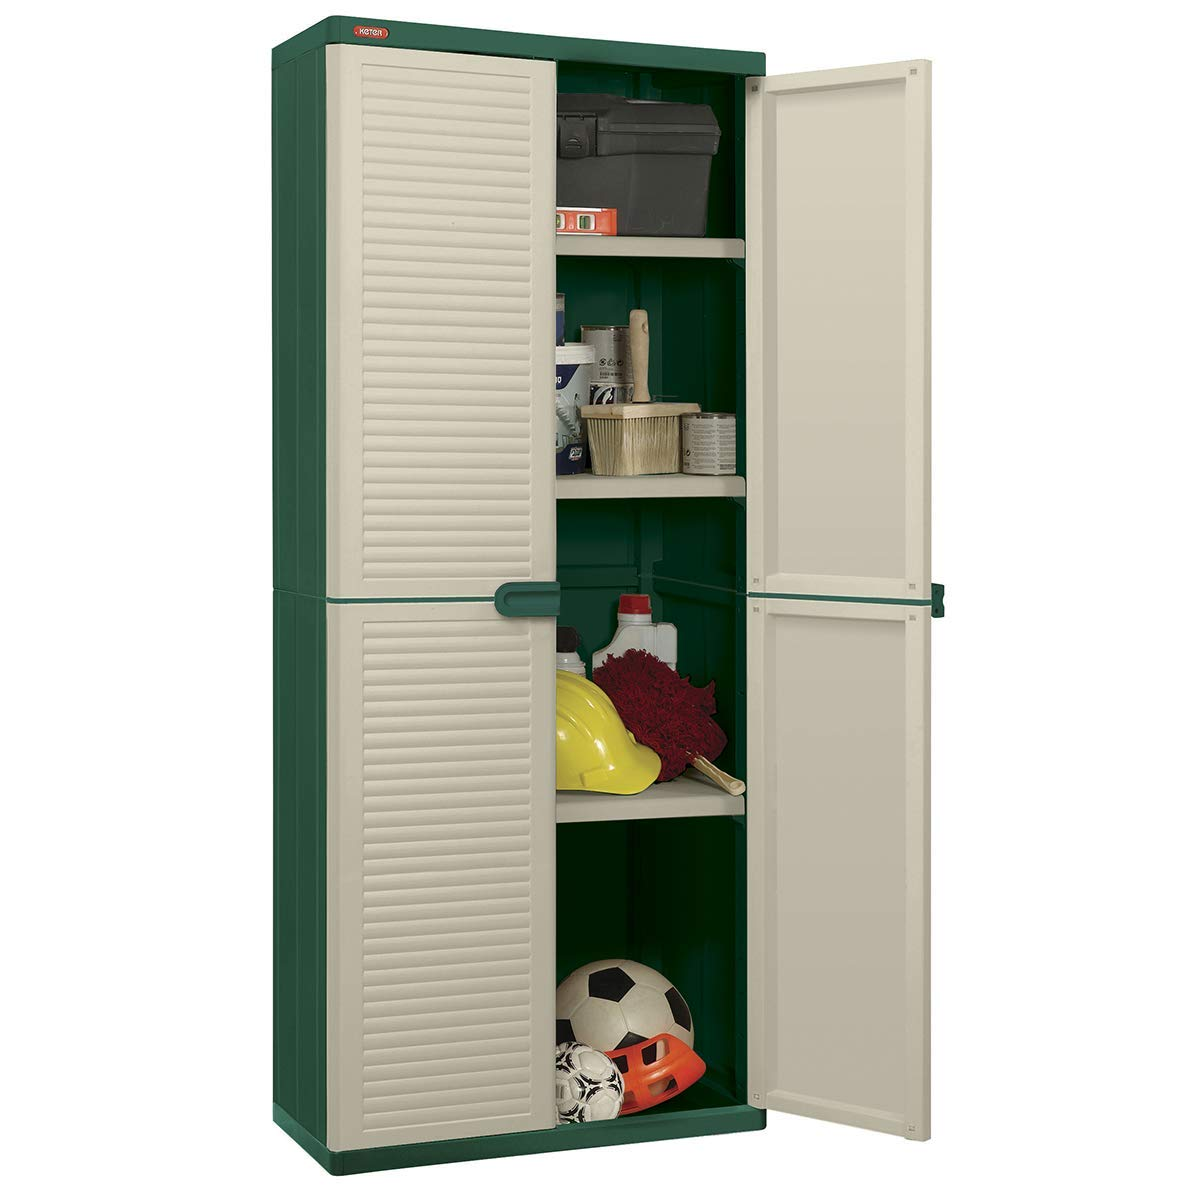 Keter Space Winner – Outdoor Wardrobe Organiser High Cupboard with 2 Shelves 68 x 38 x 163 cm Green and Beige Curver 17201402